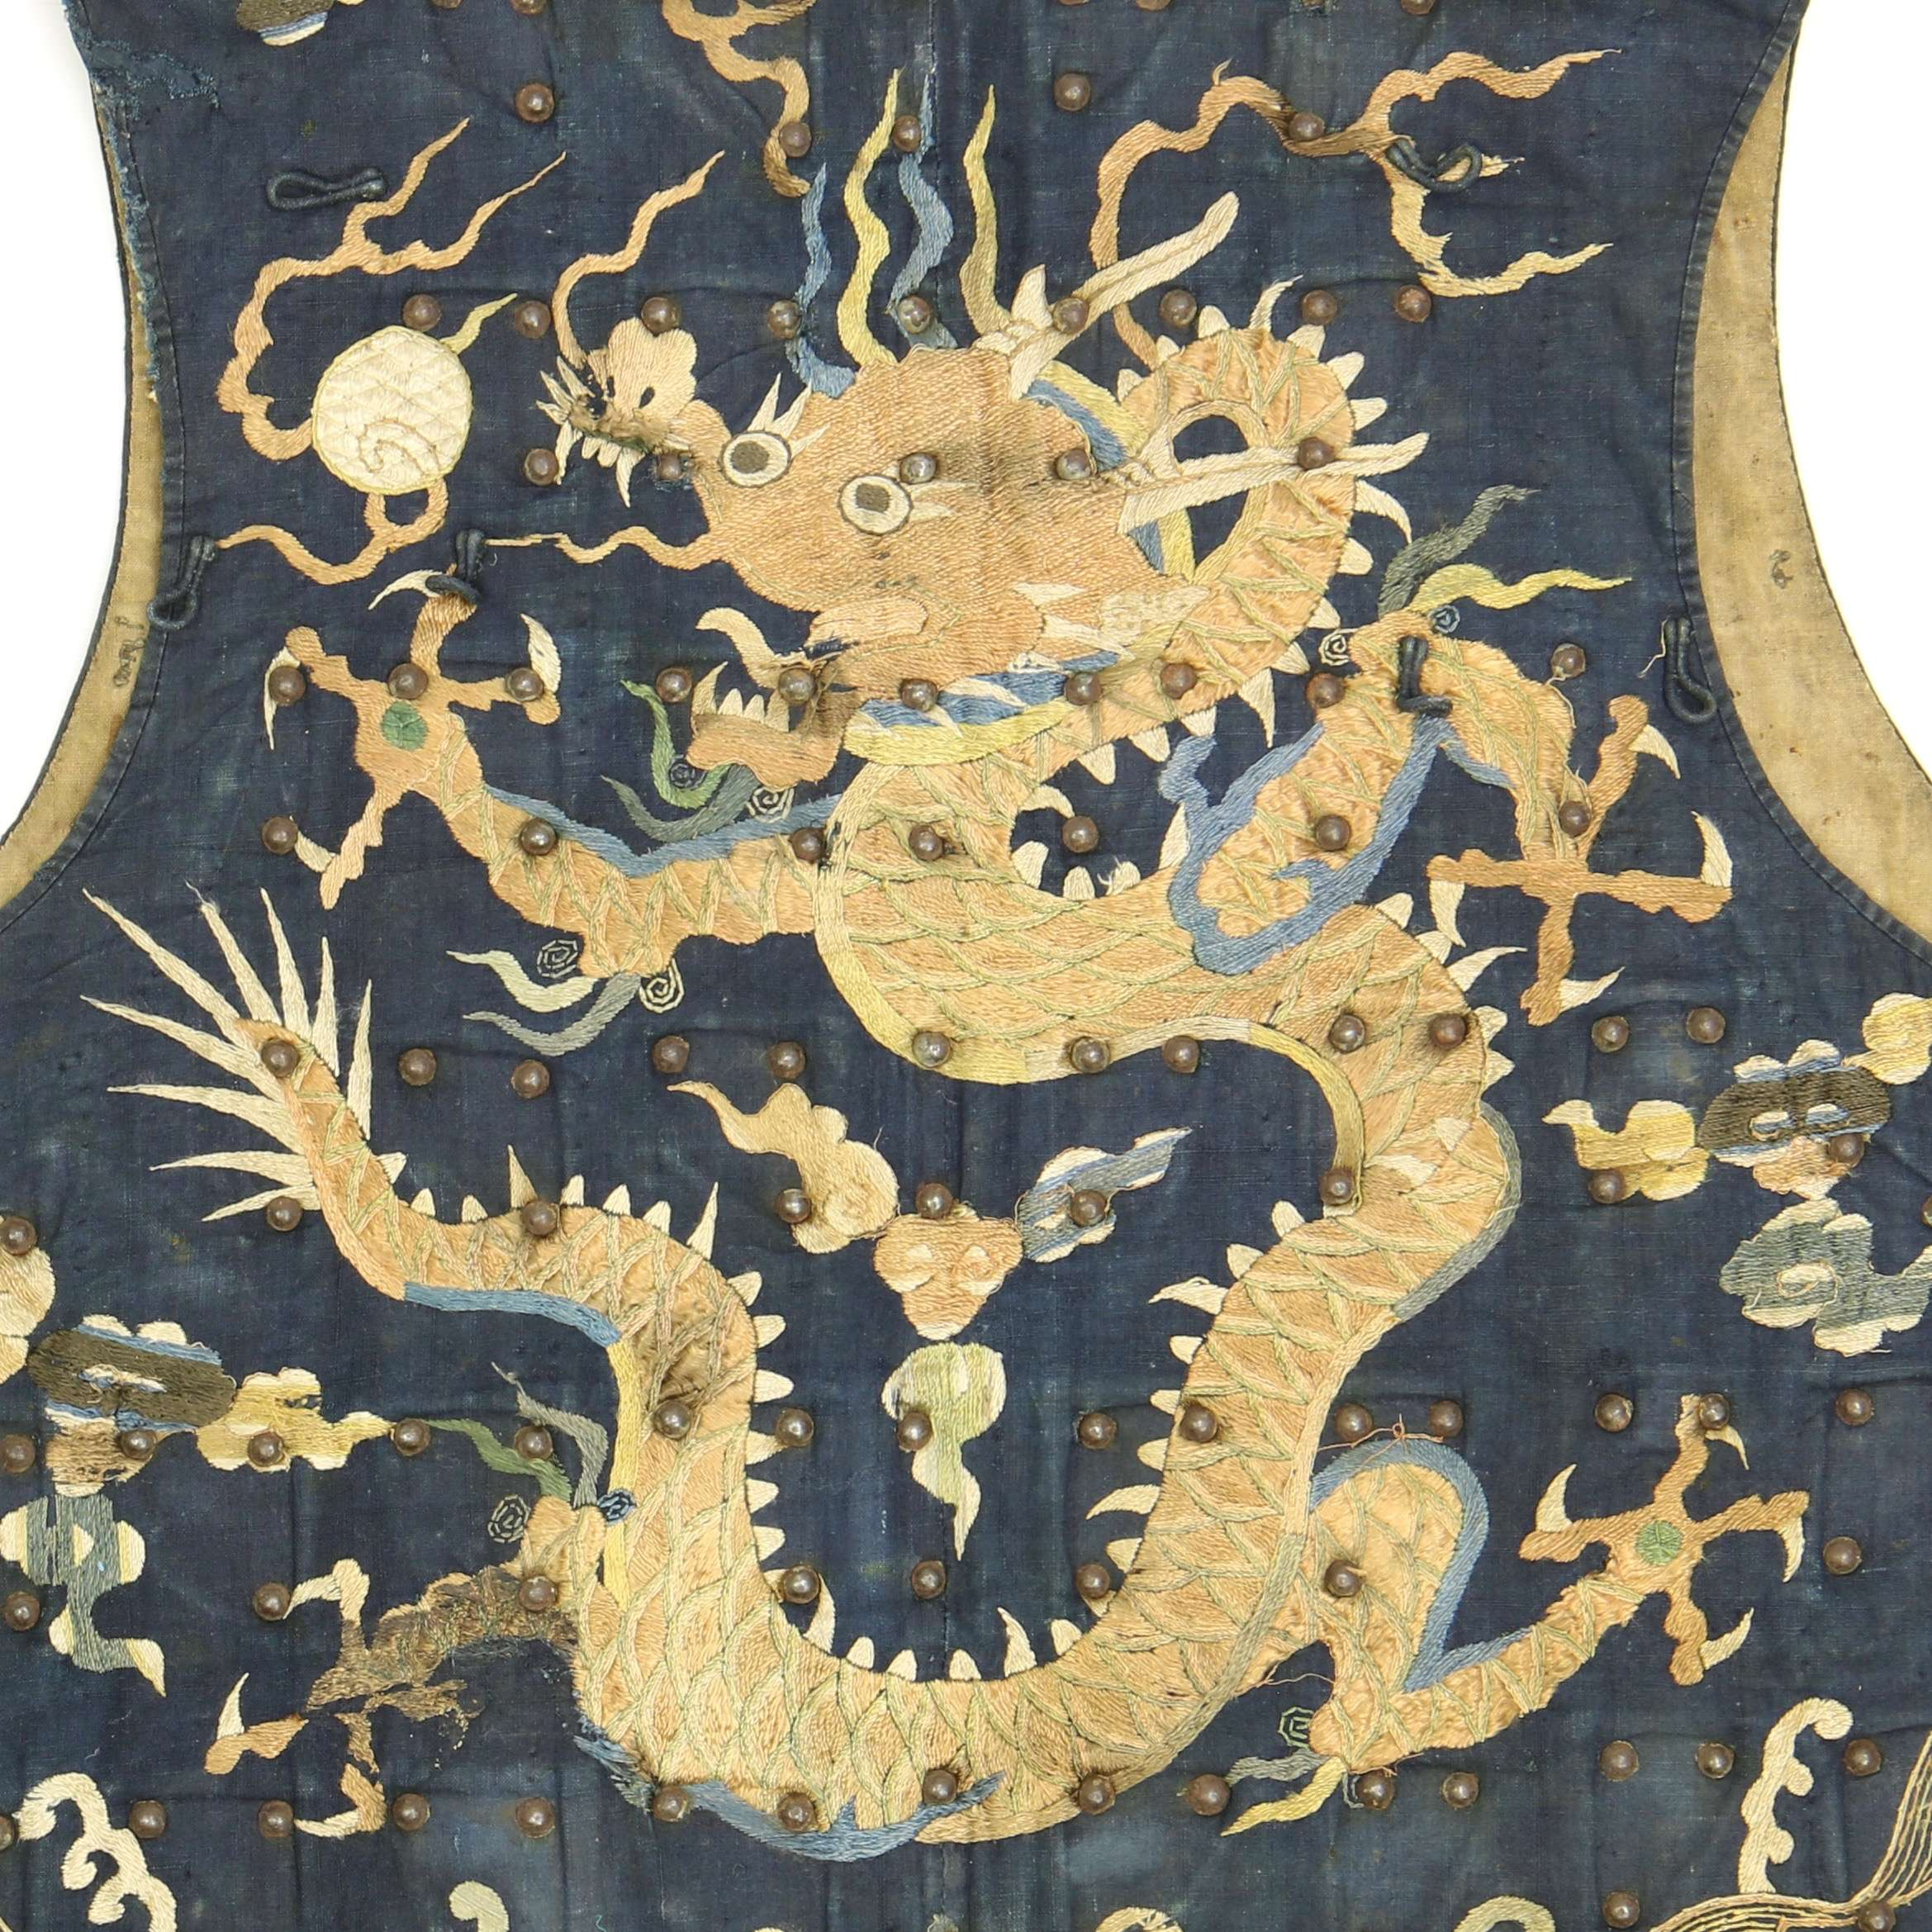 An early armored dingjia vest of the Ming-Qing transition period